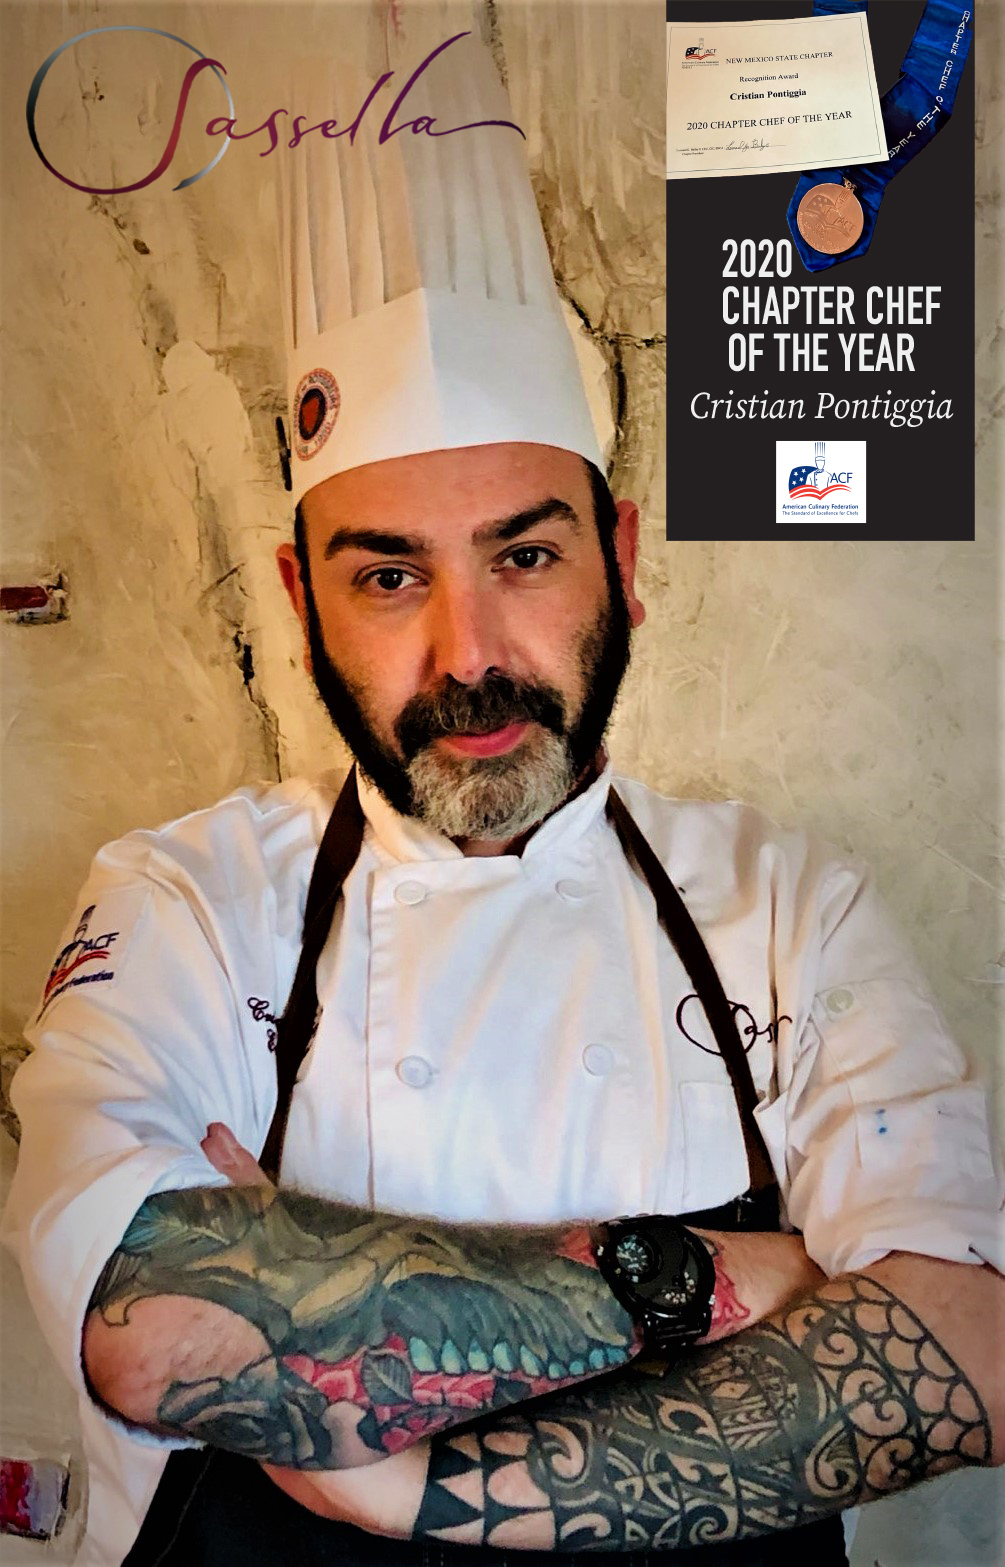 SASSELLA'S CRISTIAN PONTIGGIA HAS BEEN NAMED THE AMERICAN CULINARY FEDERATION'S 2020 NEW MEXICO CHAPTER CHEF OF THE YEAR!